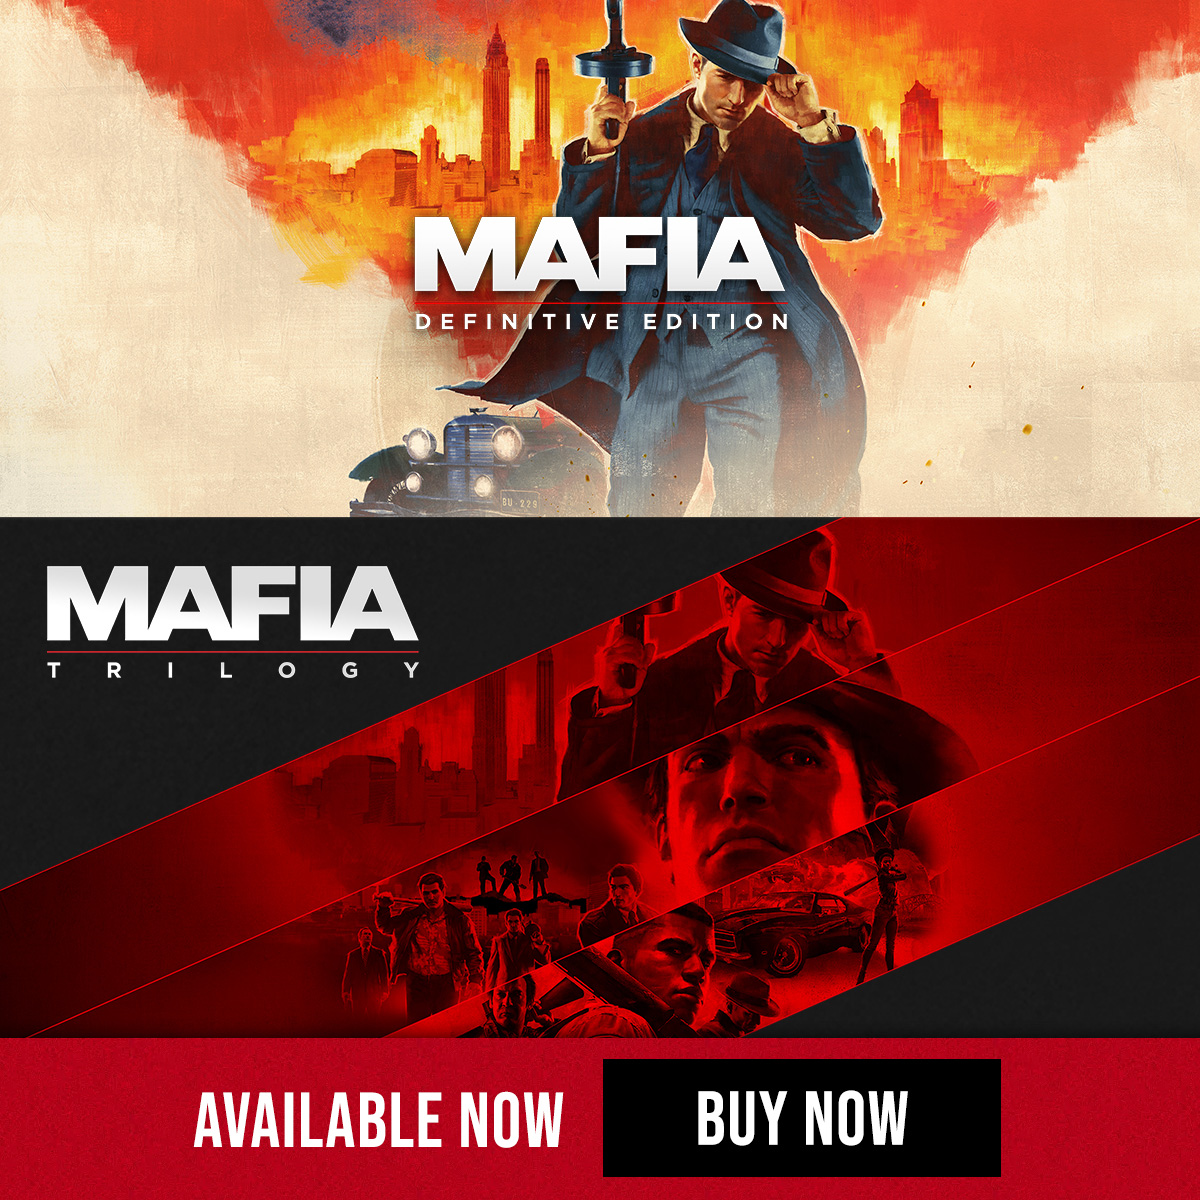 Mafia Trilogy Definitive Edition